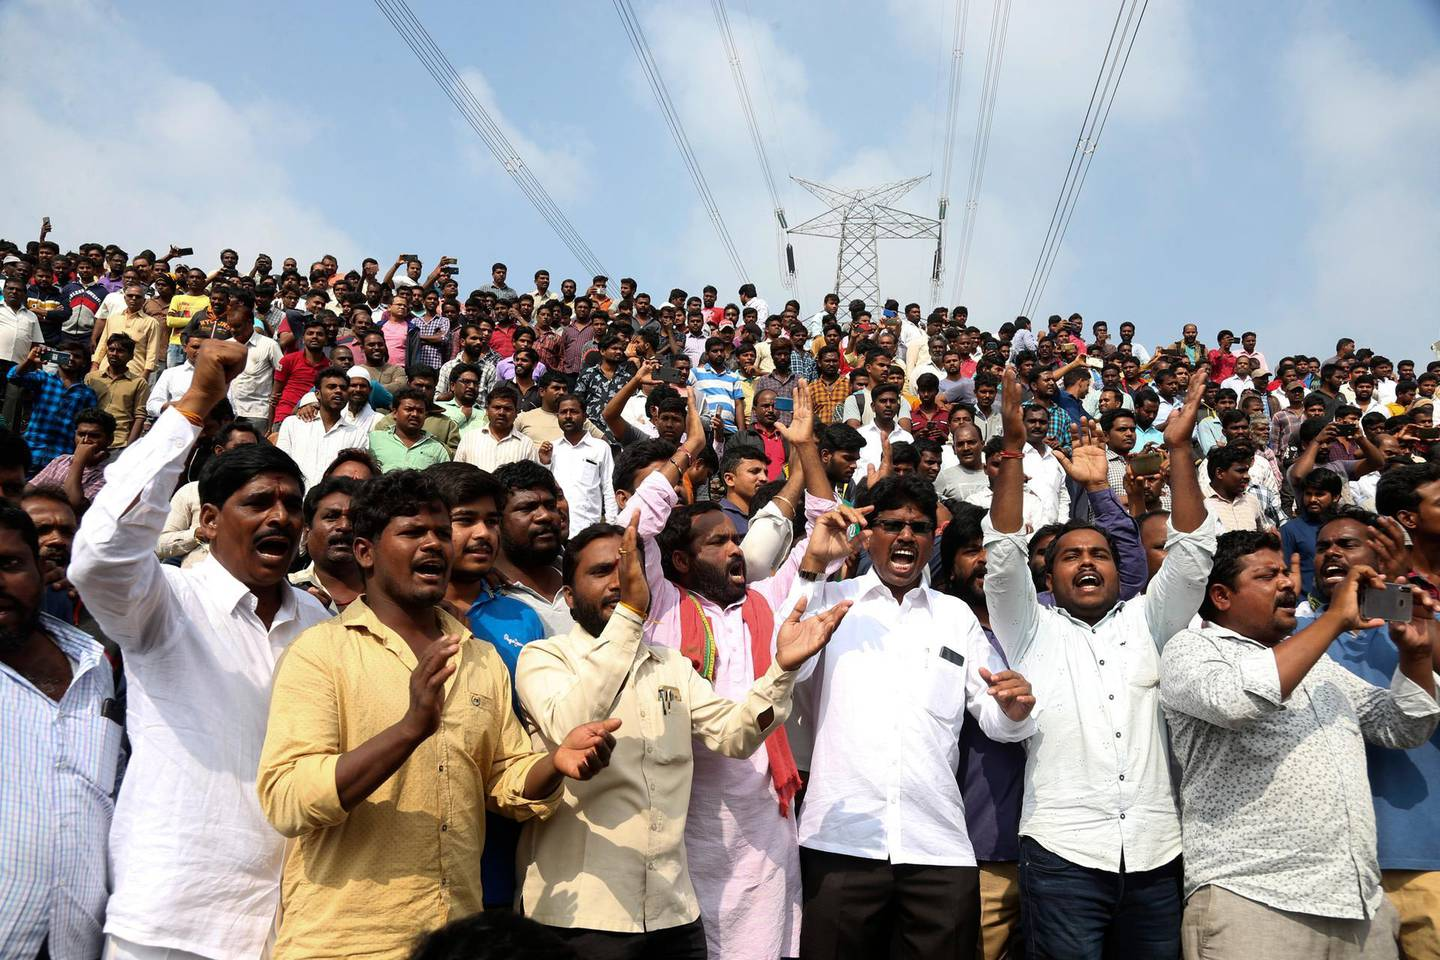 People shout slogans in favor of police and cheer them while gathering near the place where rape accused were shot in Shadnagar some 50 kilometers or 31 miles from  Hyderabad, India, Friday, Dec. 6, 2019. An Indian police official says four men accused of raping and killing a woman in southern India have been fatally shot by police. (AP Photo/Mahesh Kumar A.)